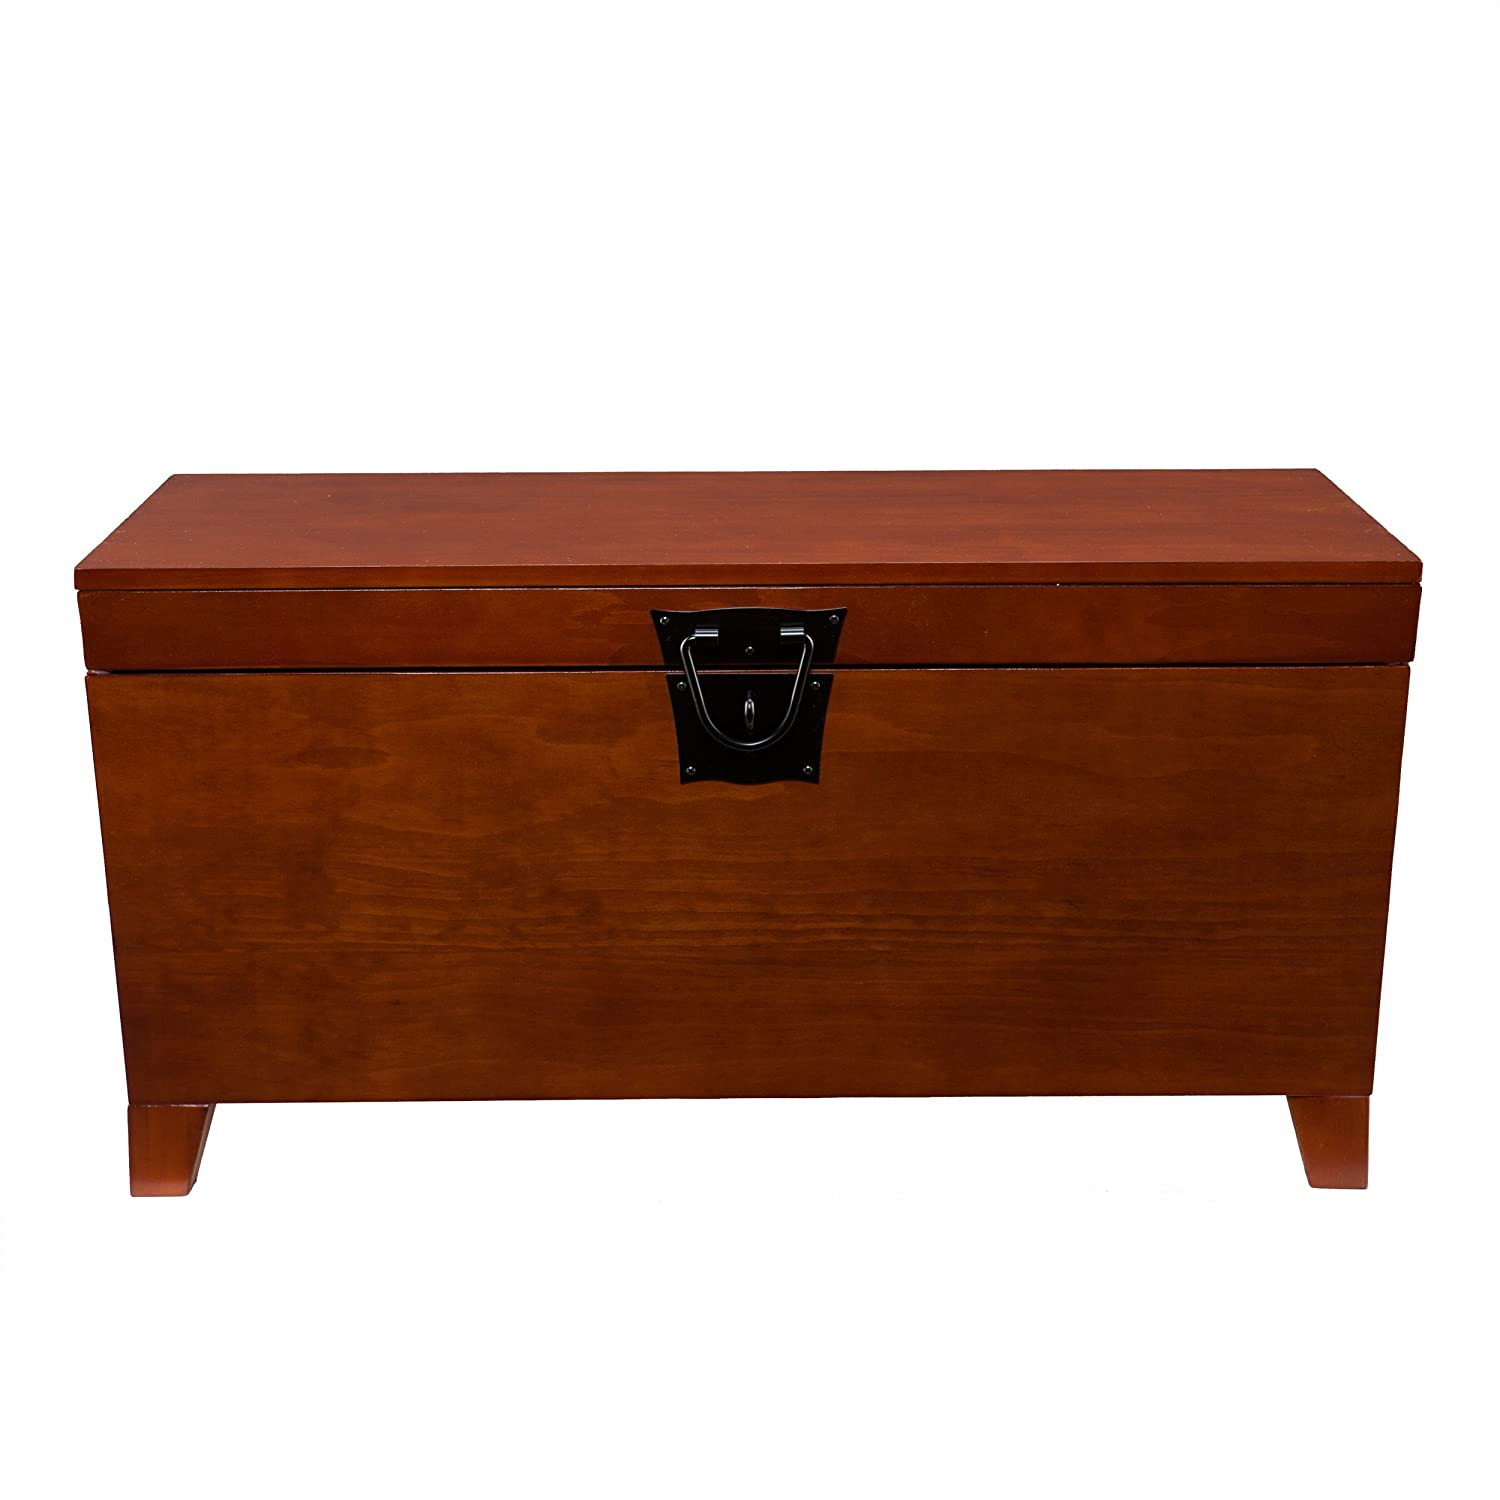 Amazon.com: Southern Enterprises Pyramid Storage Trunk Cocktail Table,  Mission Oak Finish: Kitchen U0026 Dining